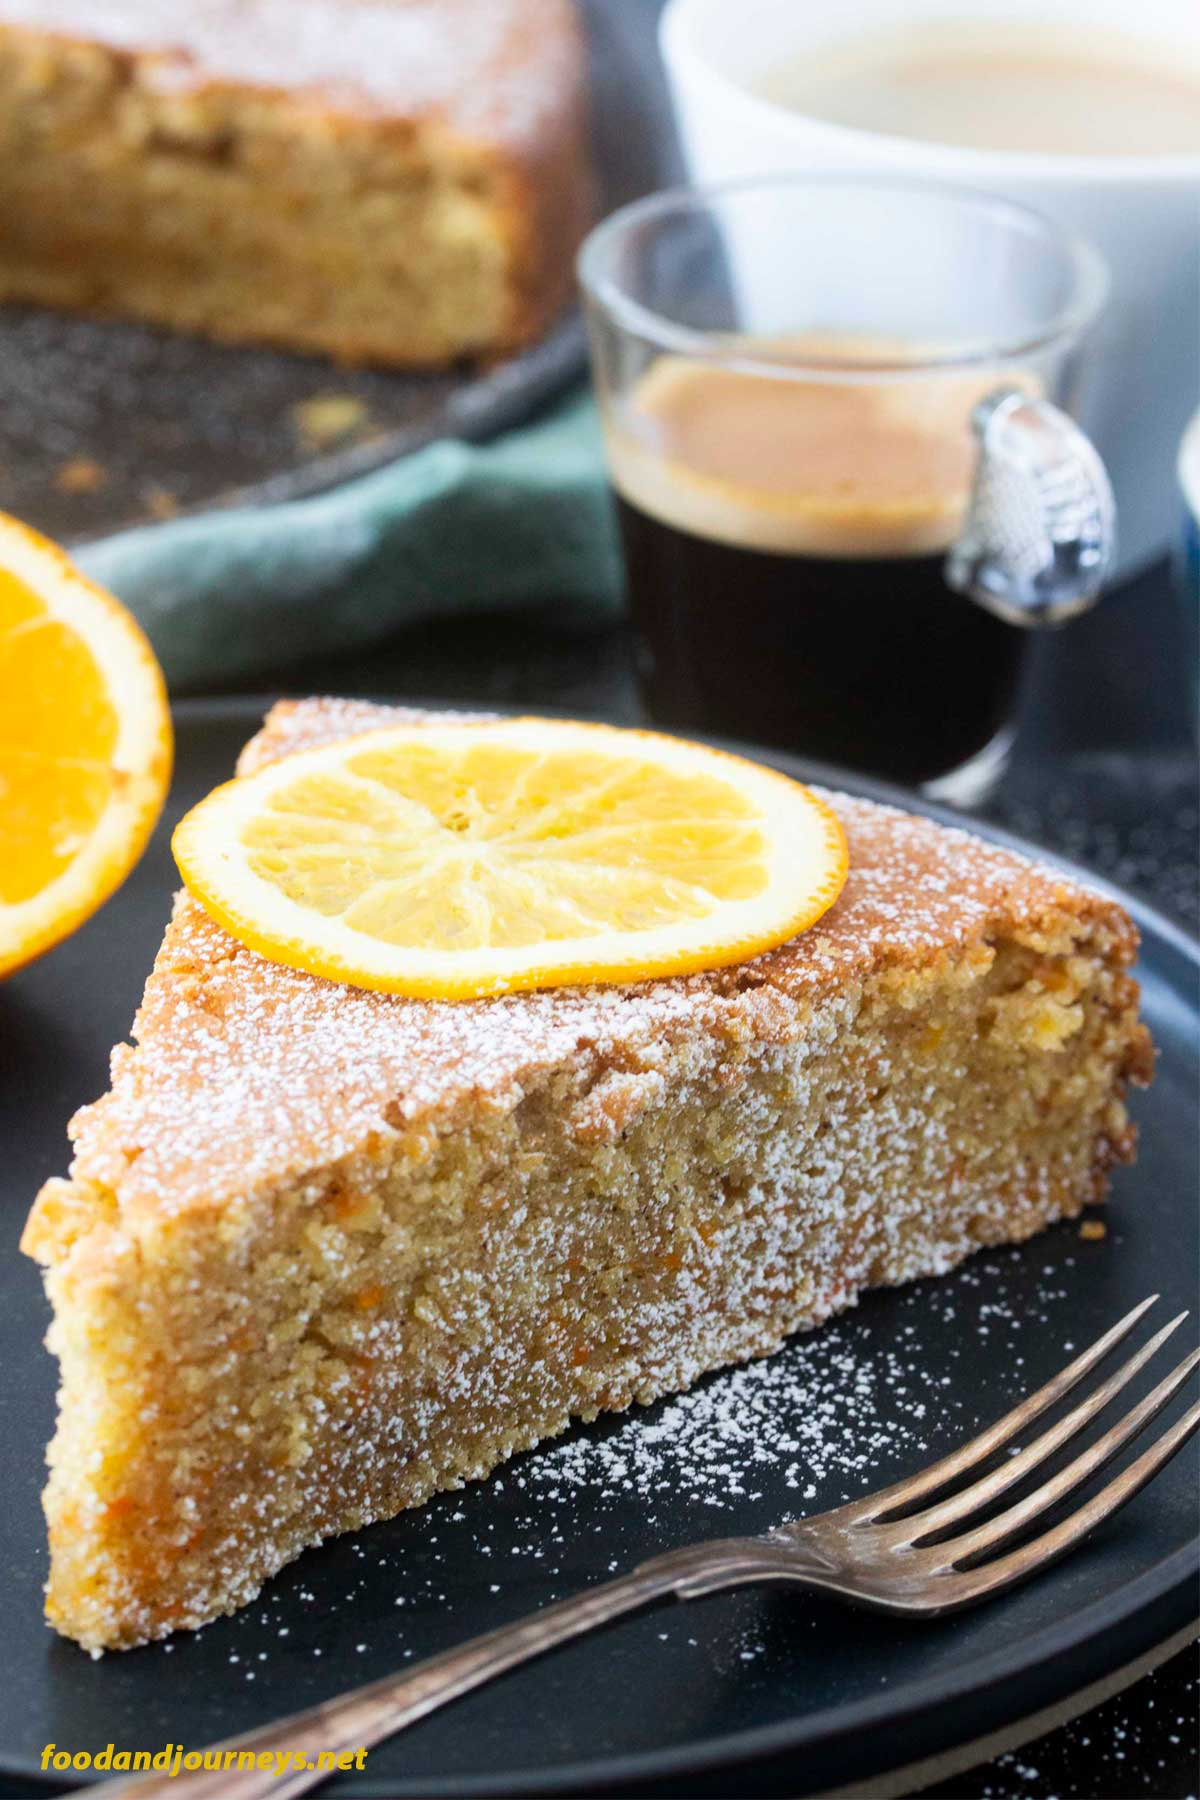 An image of a slice of Carrot and Orange Cake